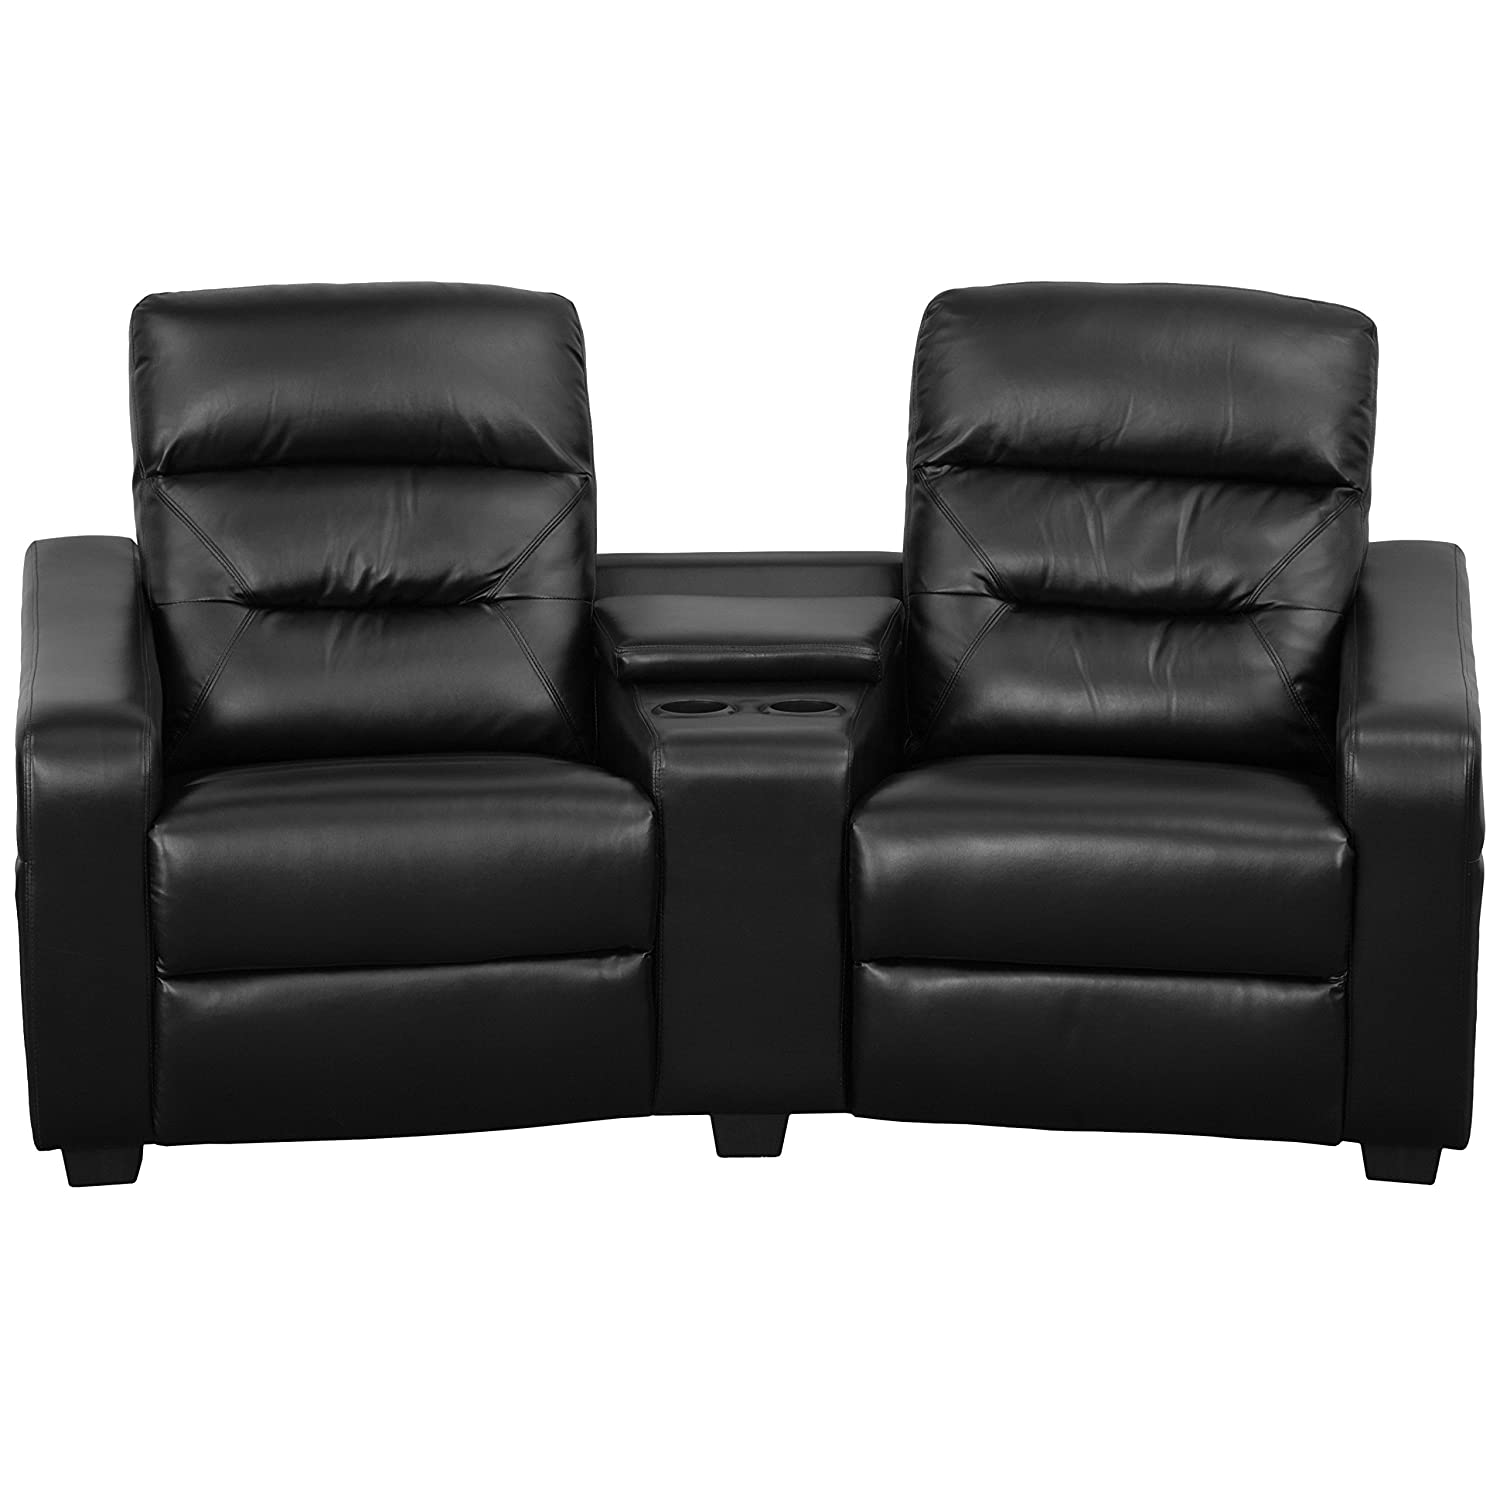 Flash Furniture Futura Series 2-Seat Reclining Black Leather Theater Seating Unit with Cup Holders  sc 1 st  Amazon.com & Home Theater Seating | Amazon.com islam-shia.org